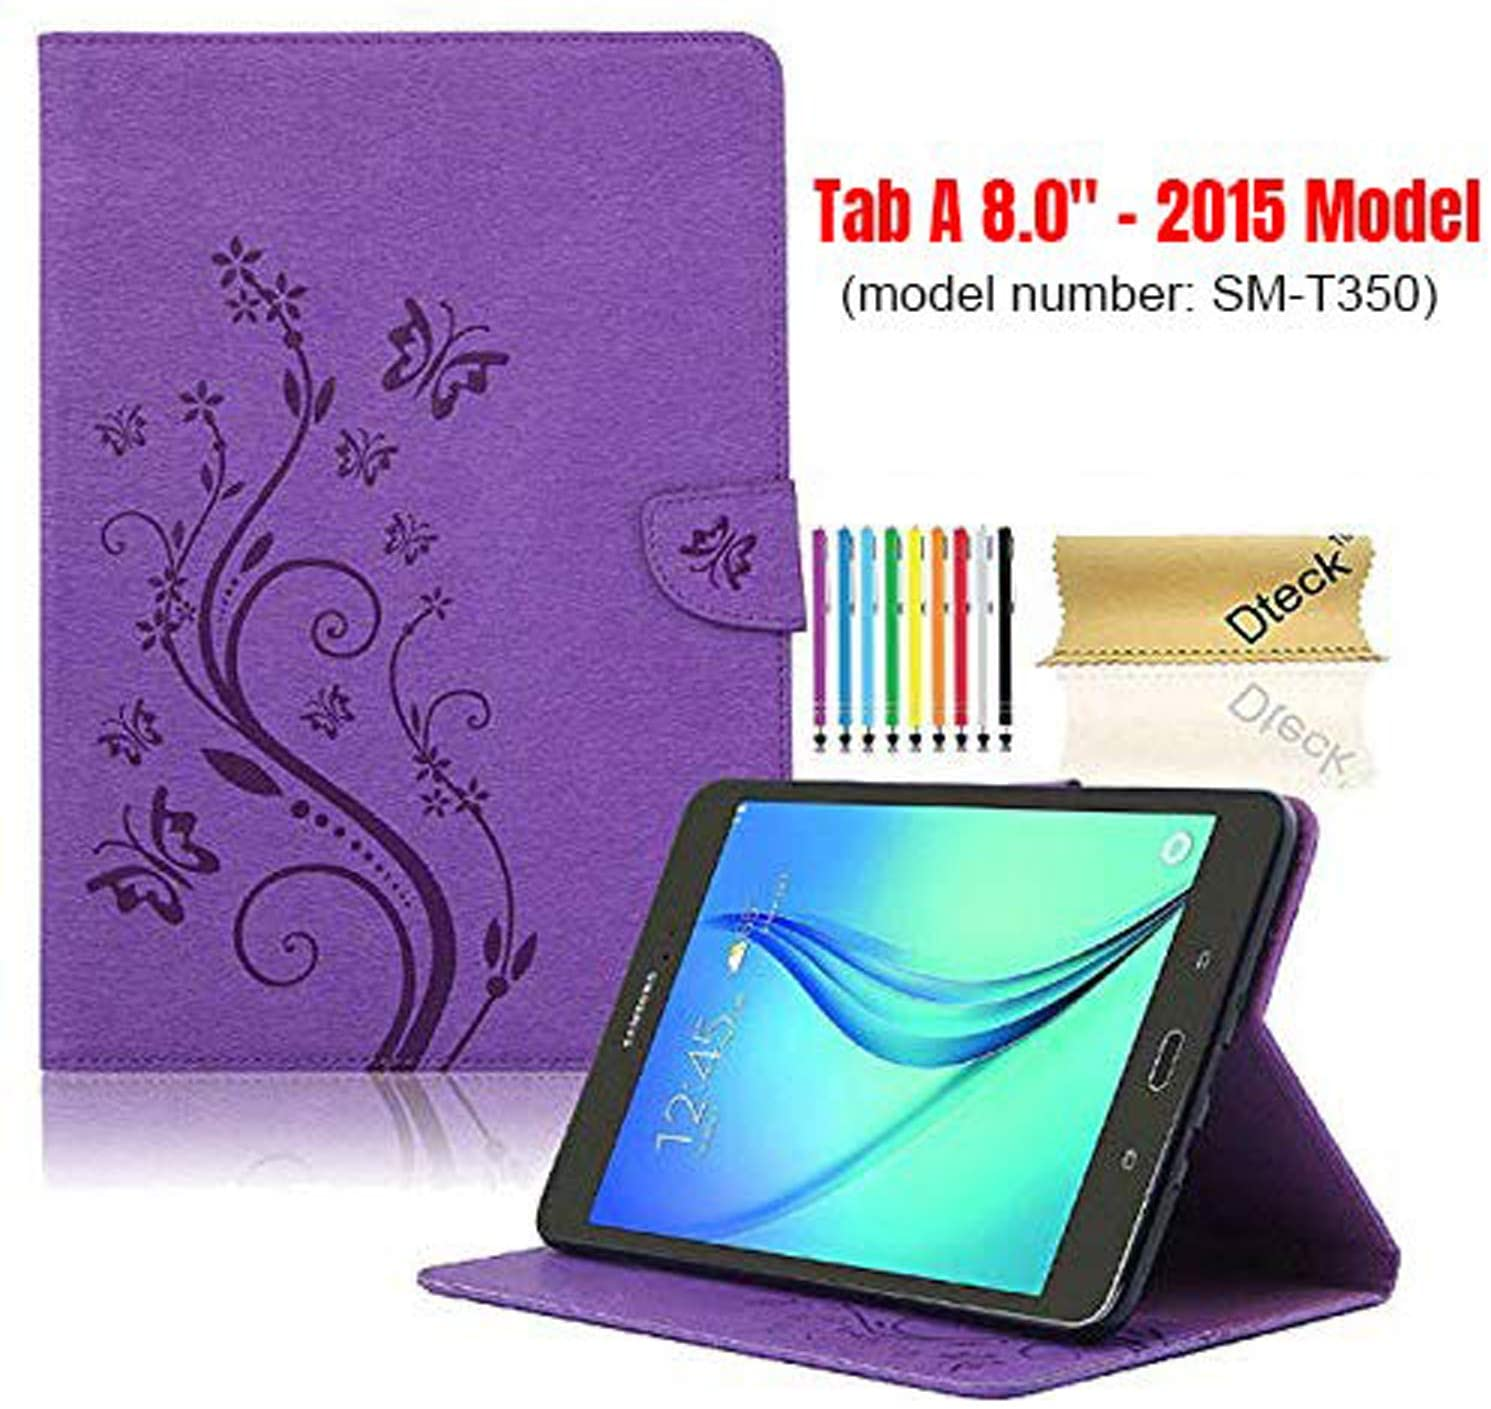 SM-T350 Case with [Stylus Pen], Tab A 8.0 Case 2015 Model, Dteck Pretty Nice Cute Butterfly Flip Stand Case PU Leather Folio Pocket Cover for Samsung Galaxy Tab A 8 Inch 2015 Version(Purple)